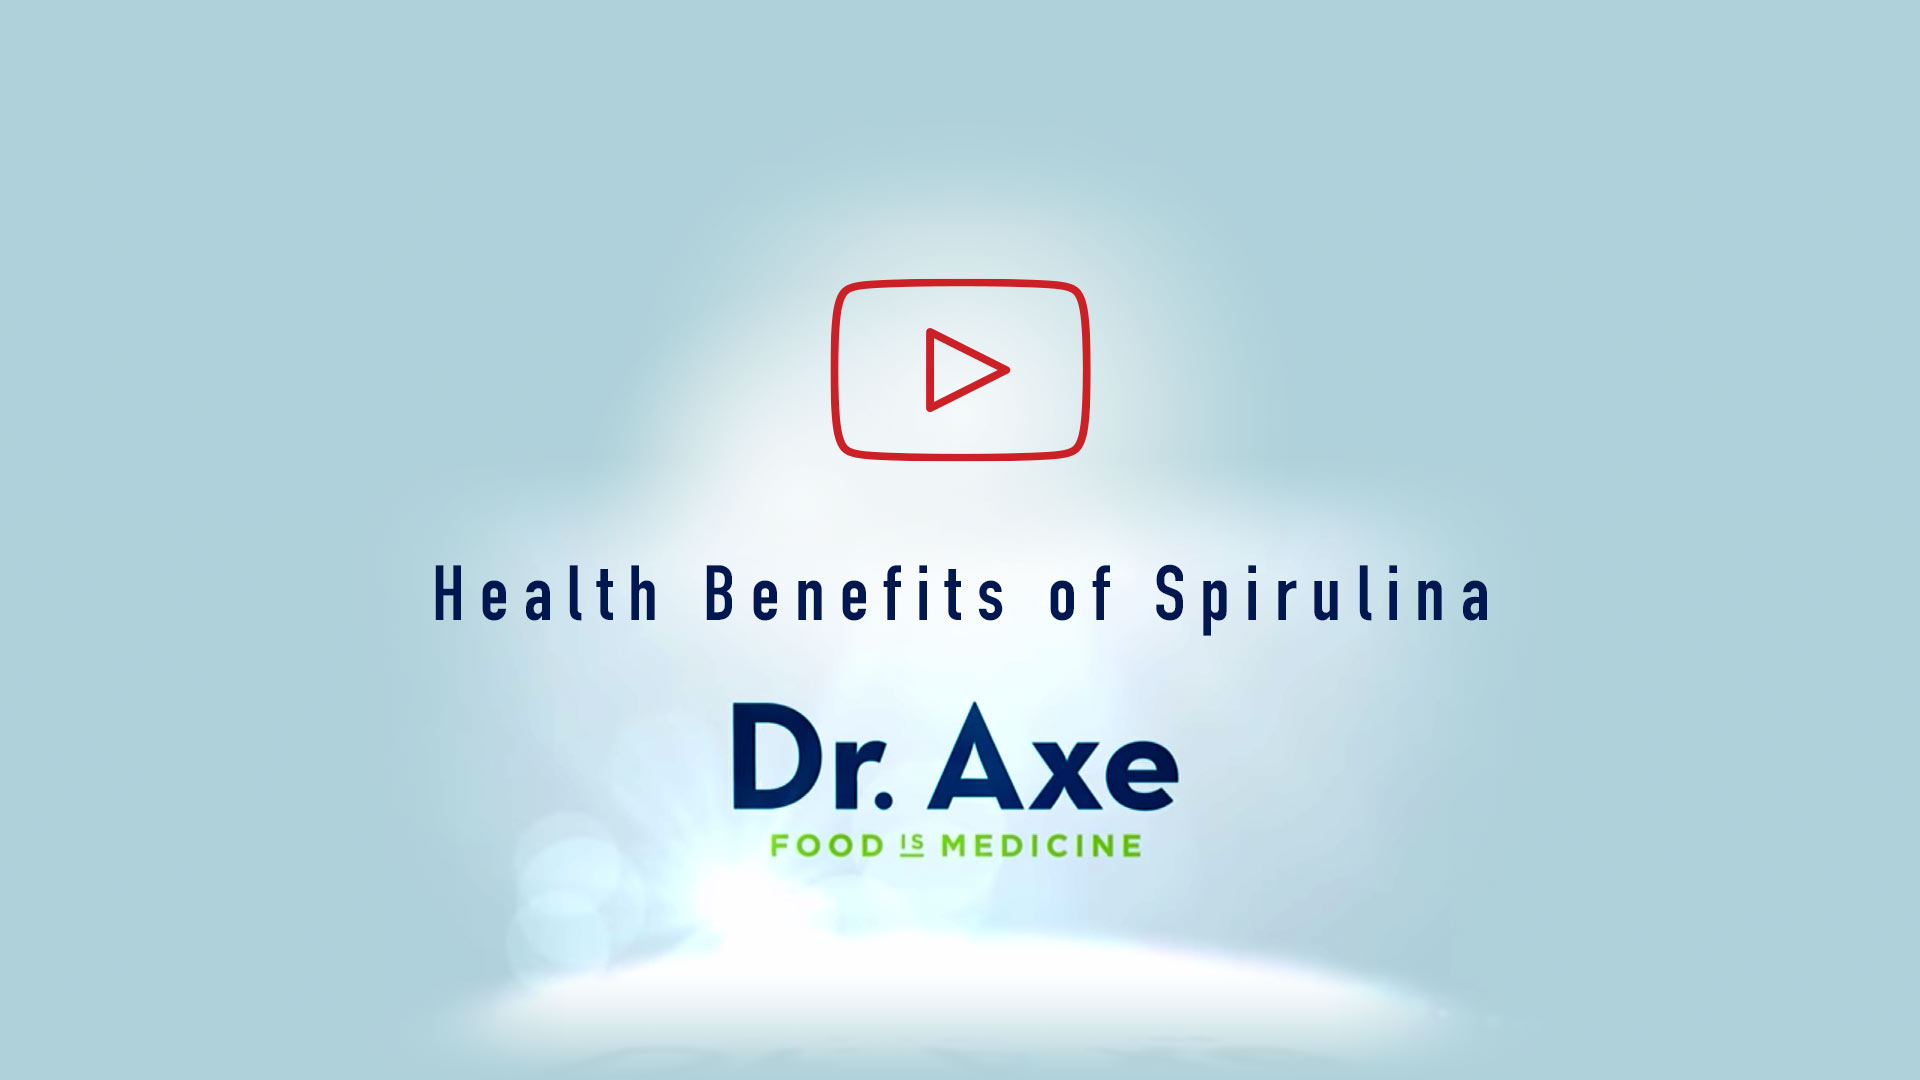 The health benefits of Spirulina